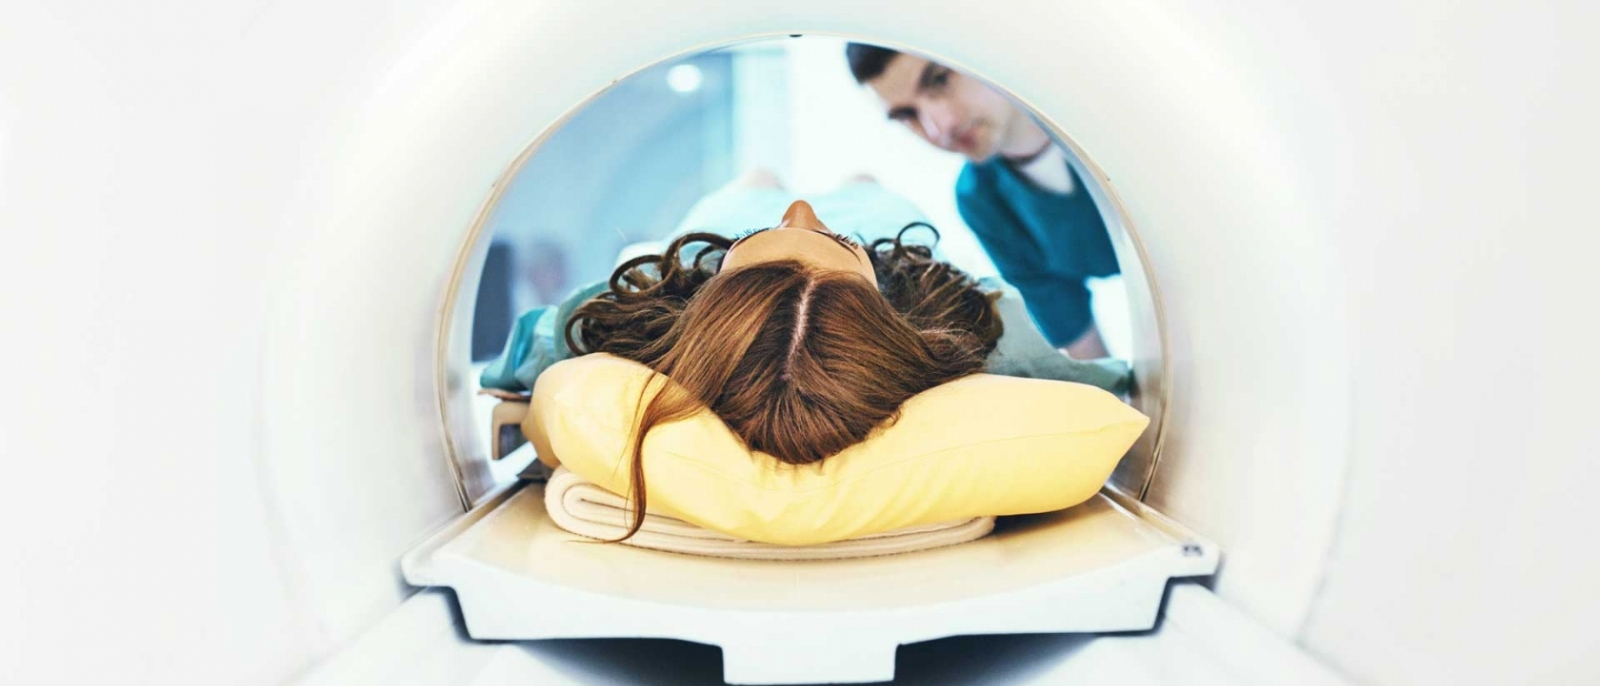 A patient entering a MRI scan.